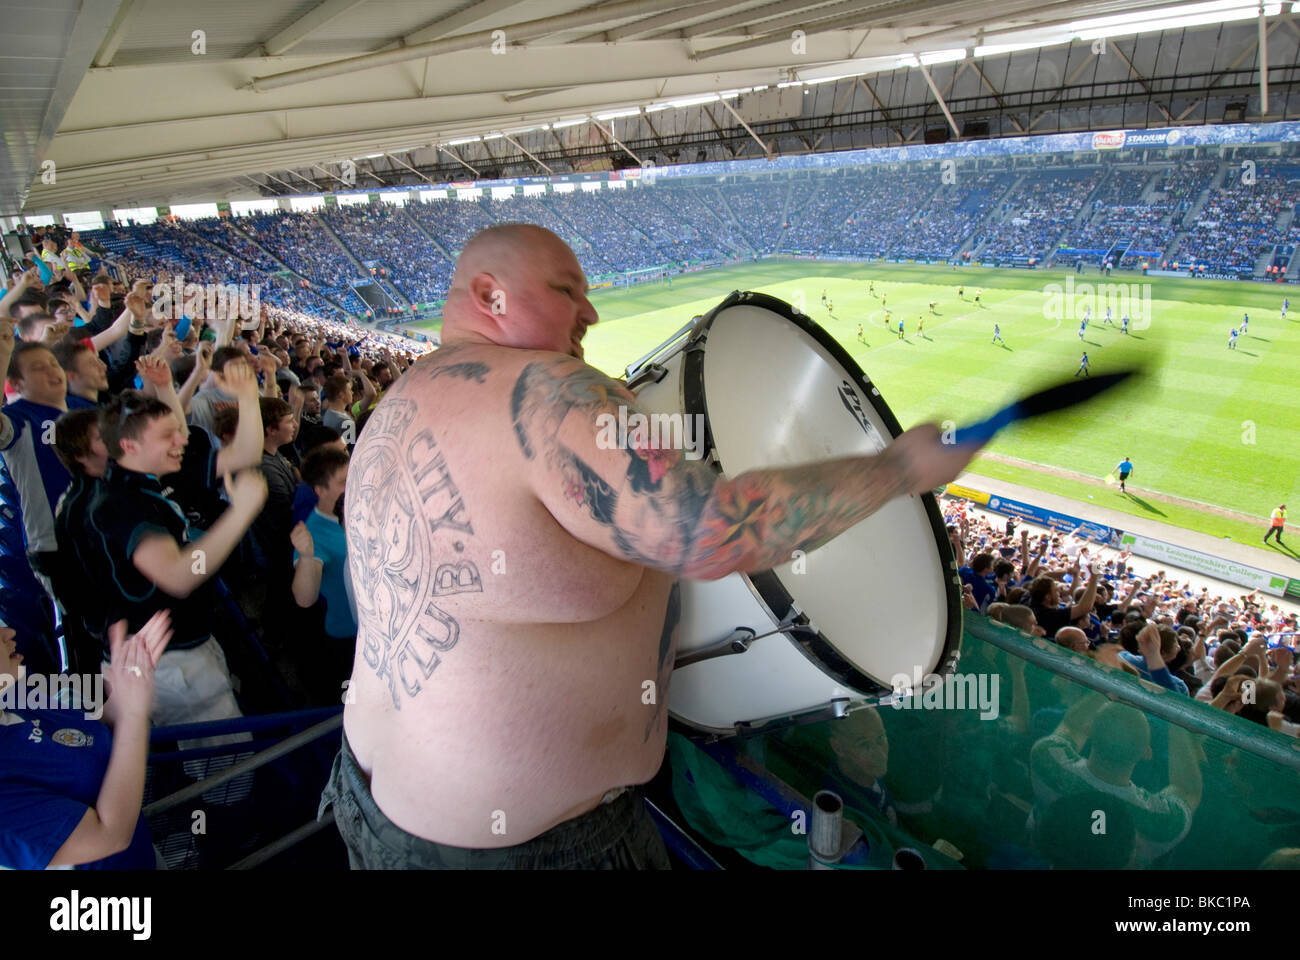 the-chant-drummer-for-the-fans-and-footb